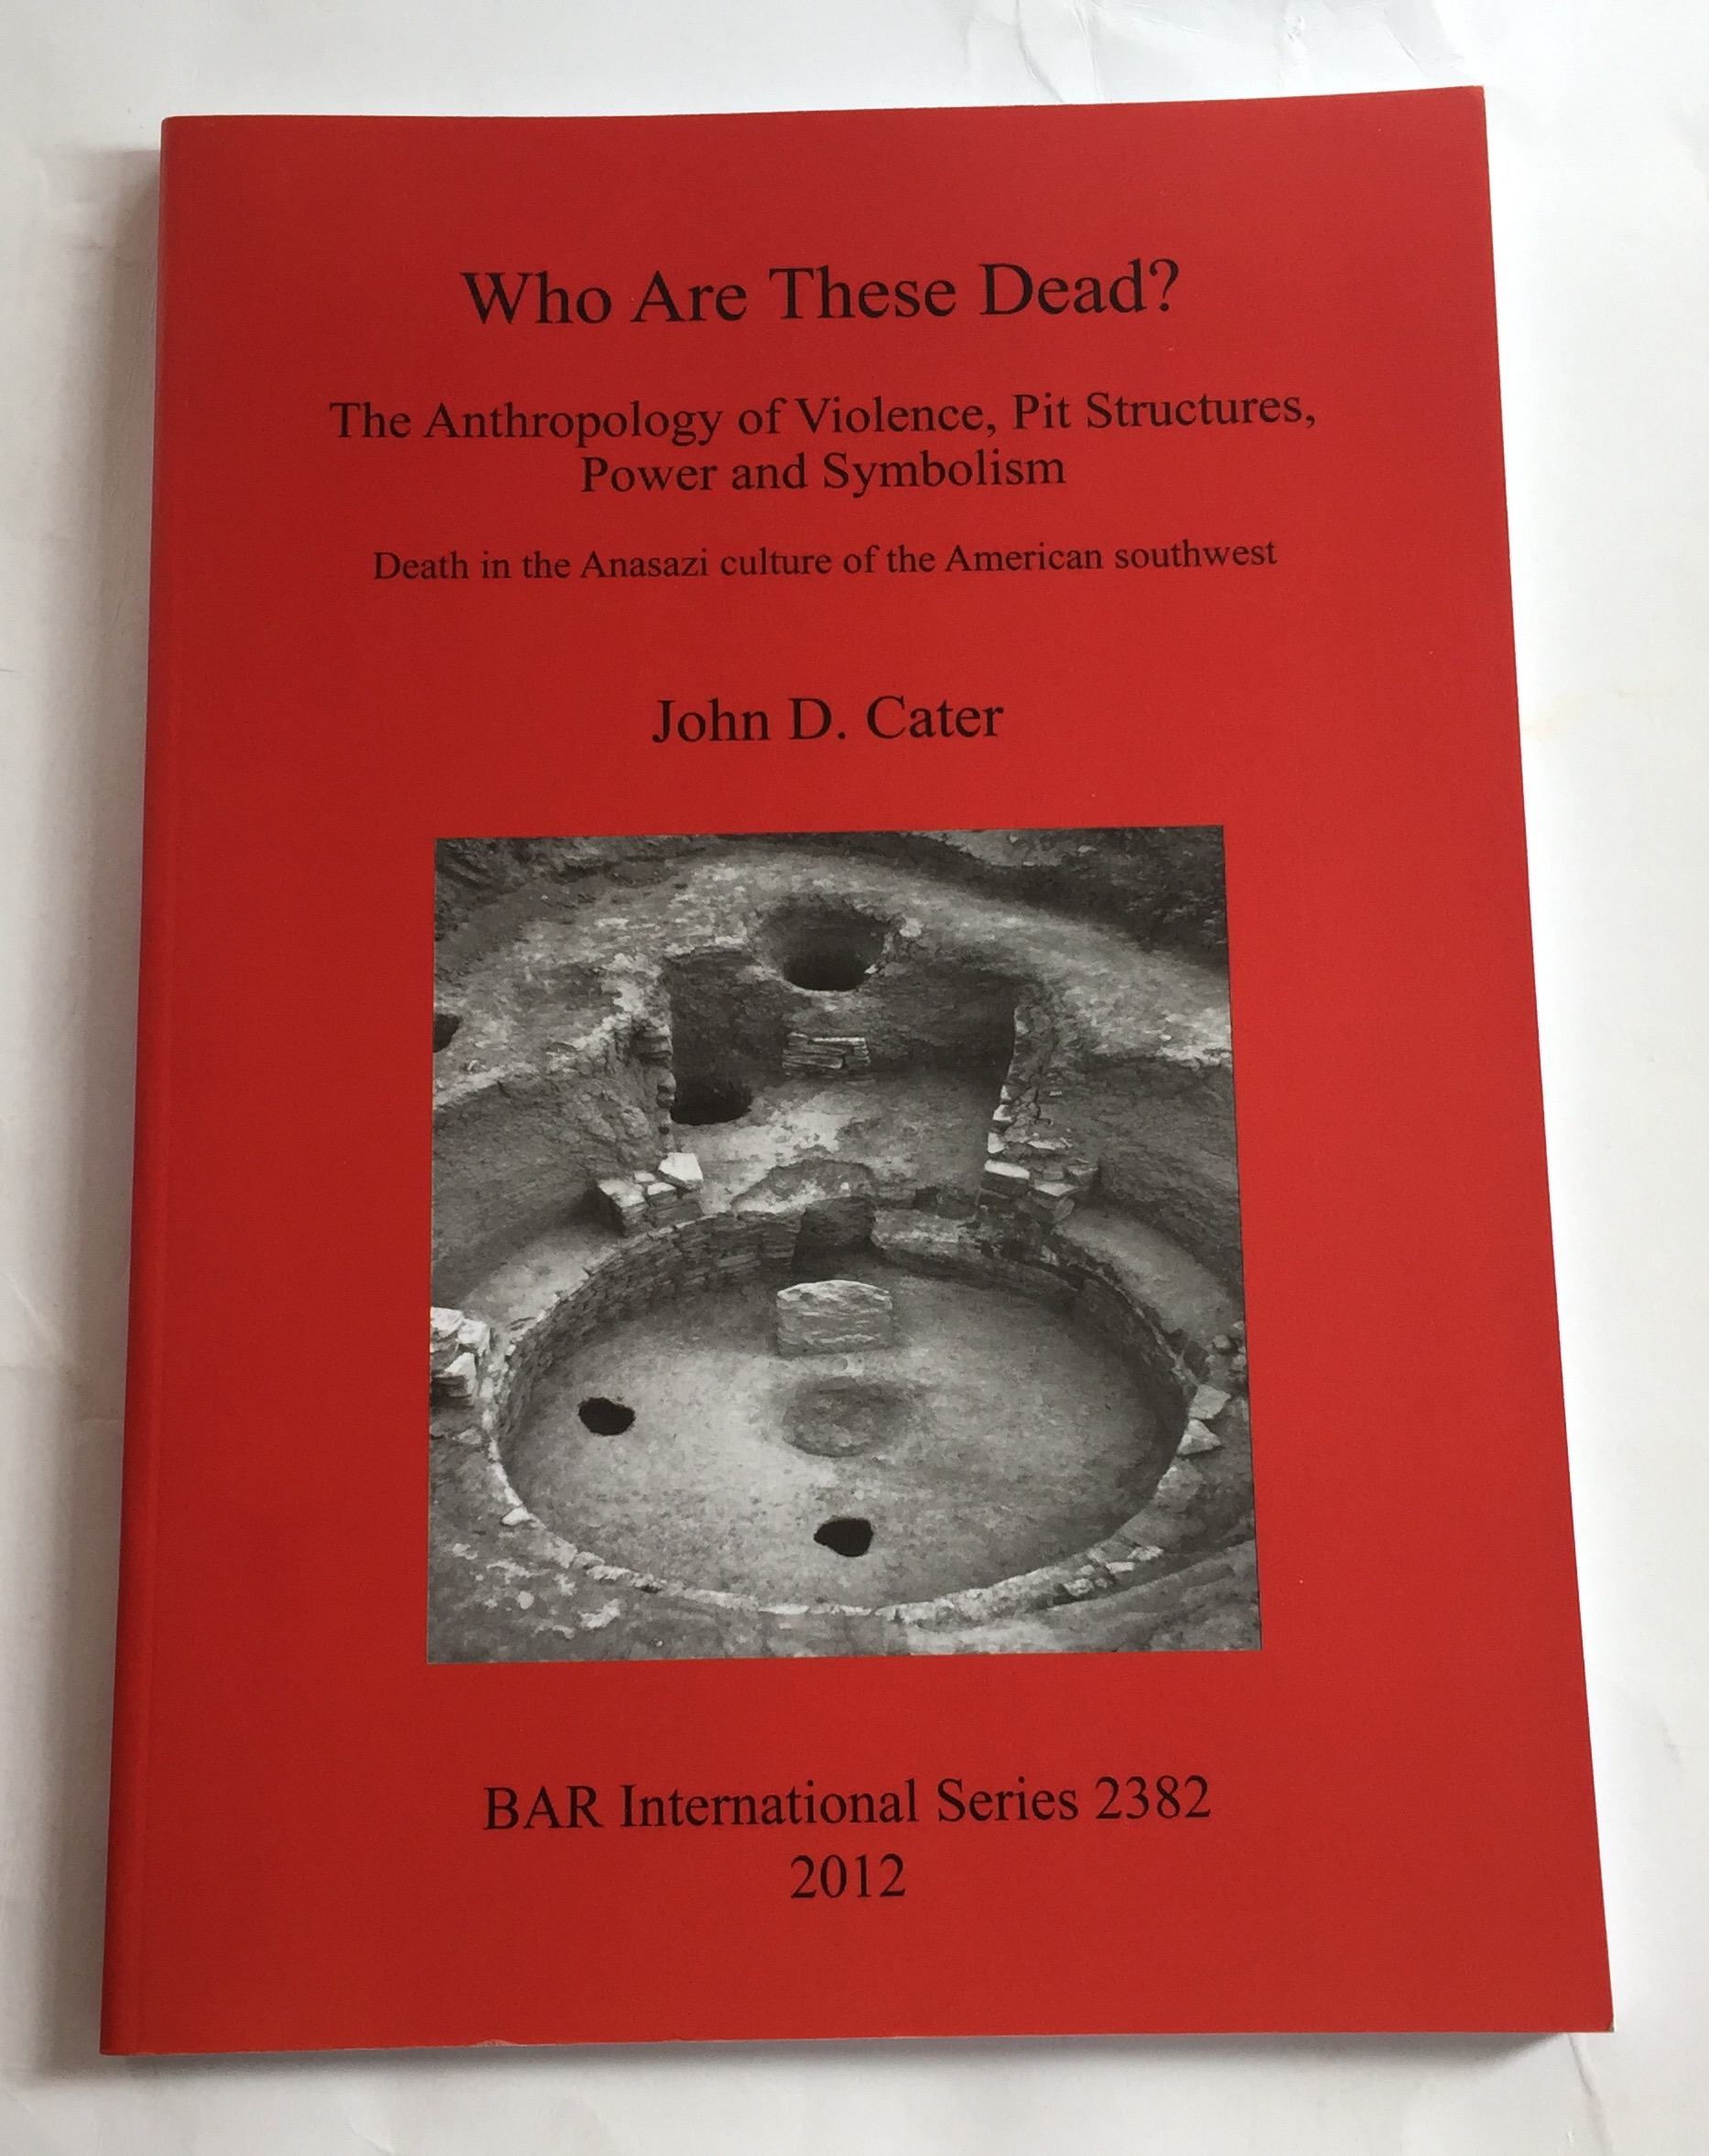 Image for Who are these Dead? :The Anthropology of Violence, Pis Structures, Power and Symbolism (BAR International Series 2382)